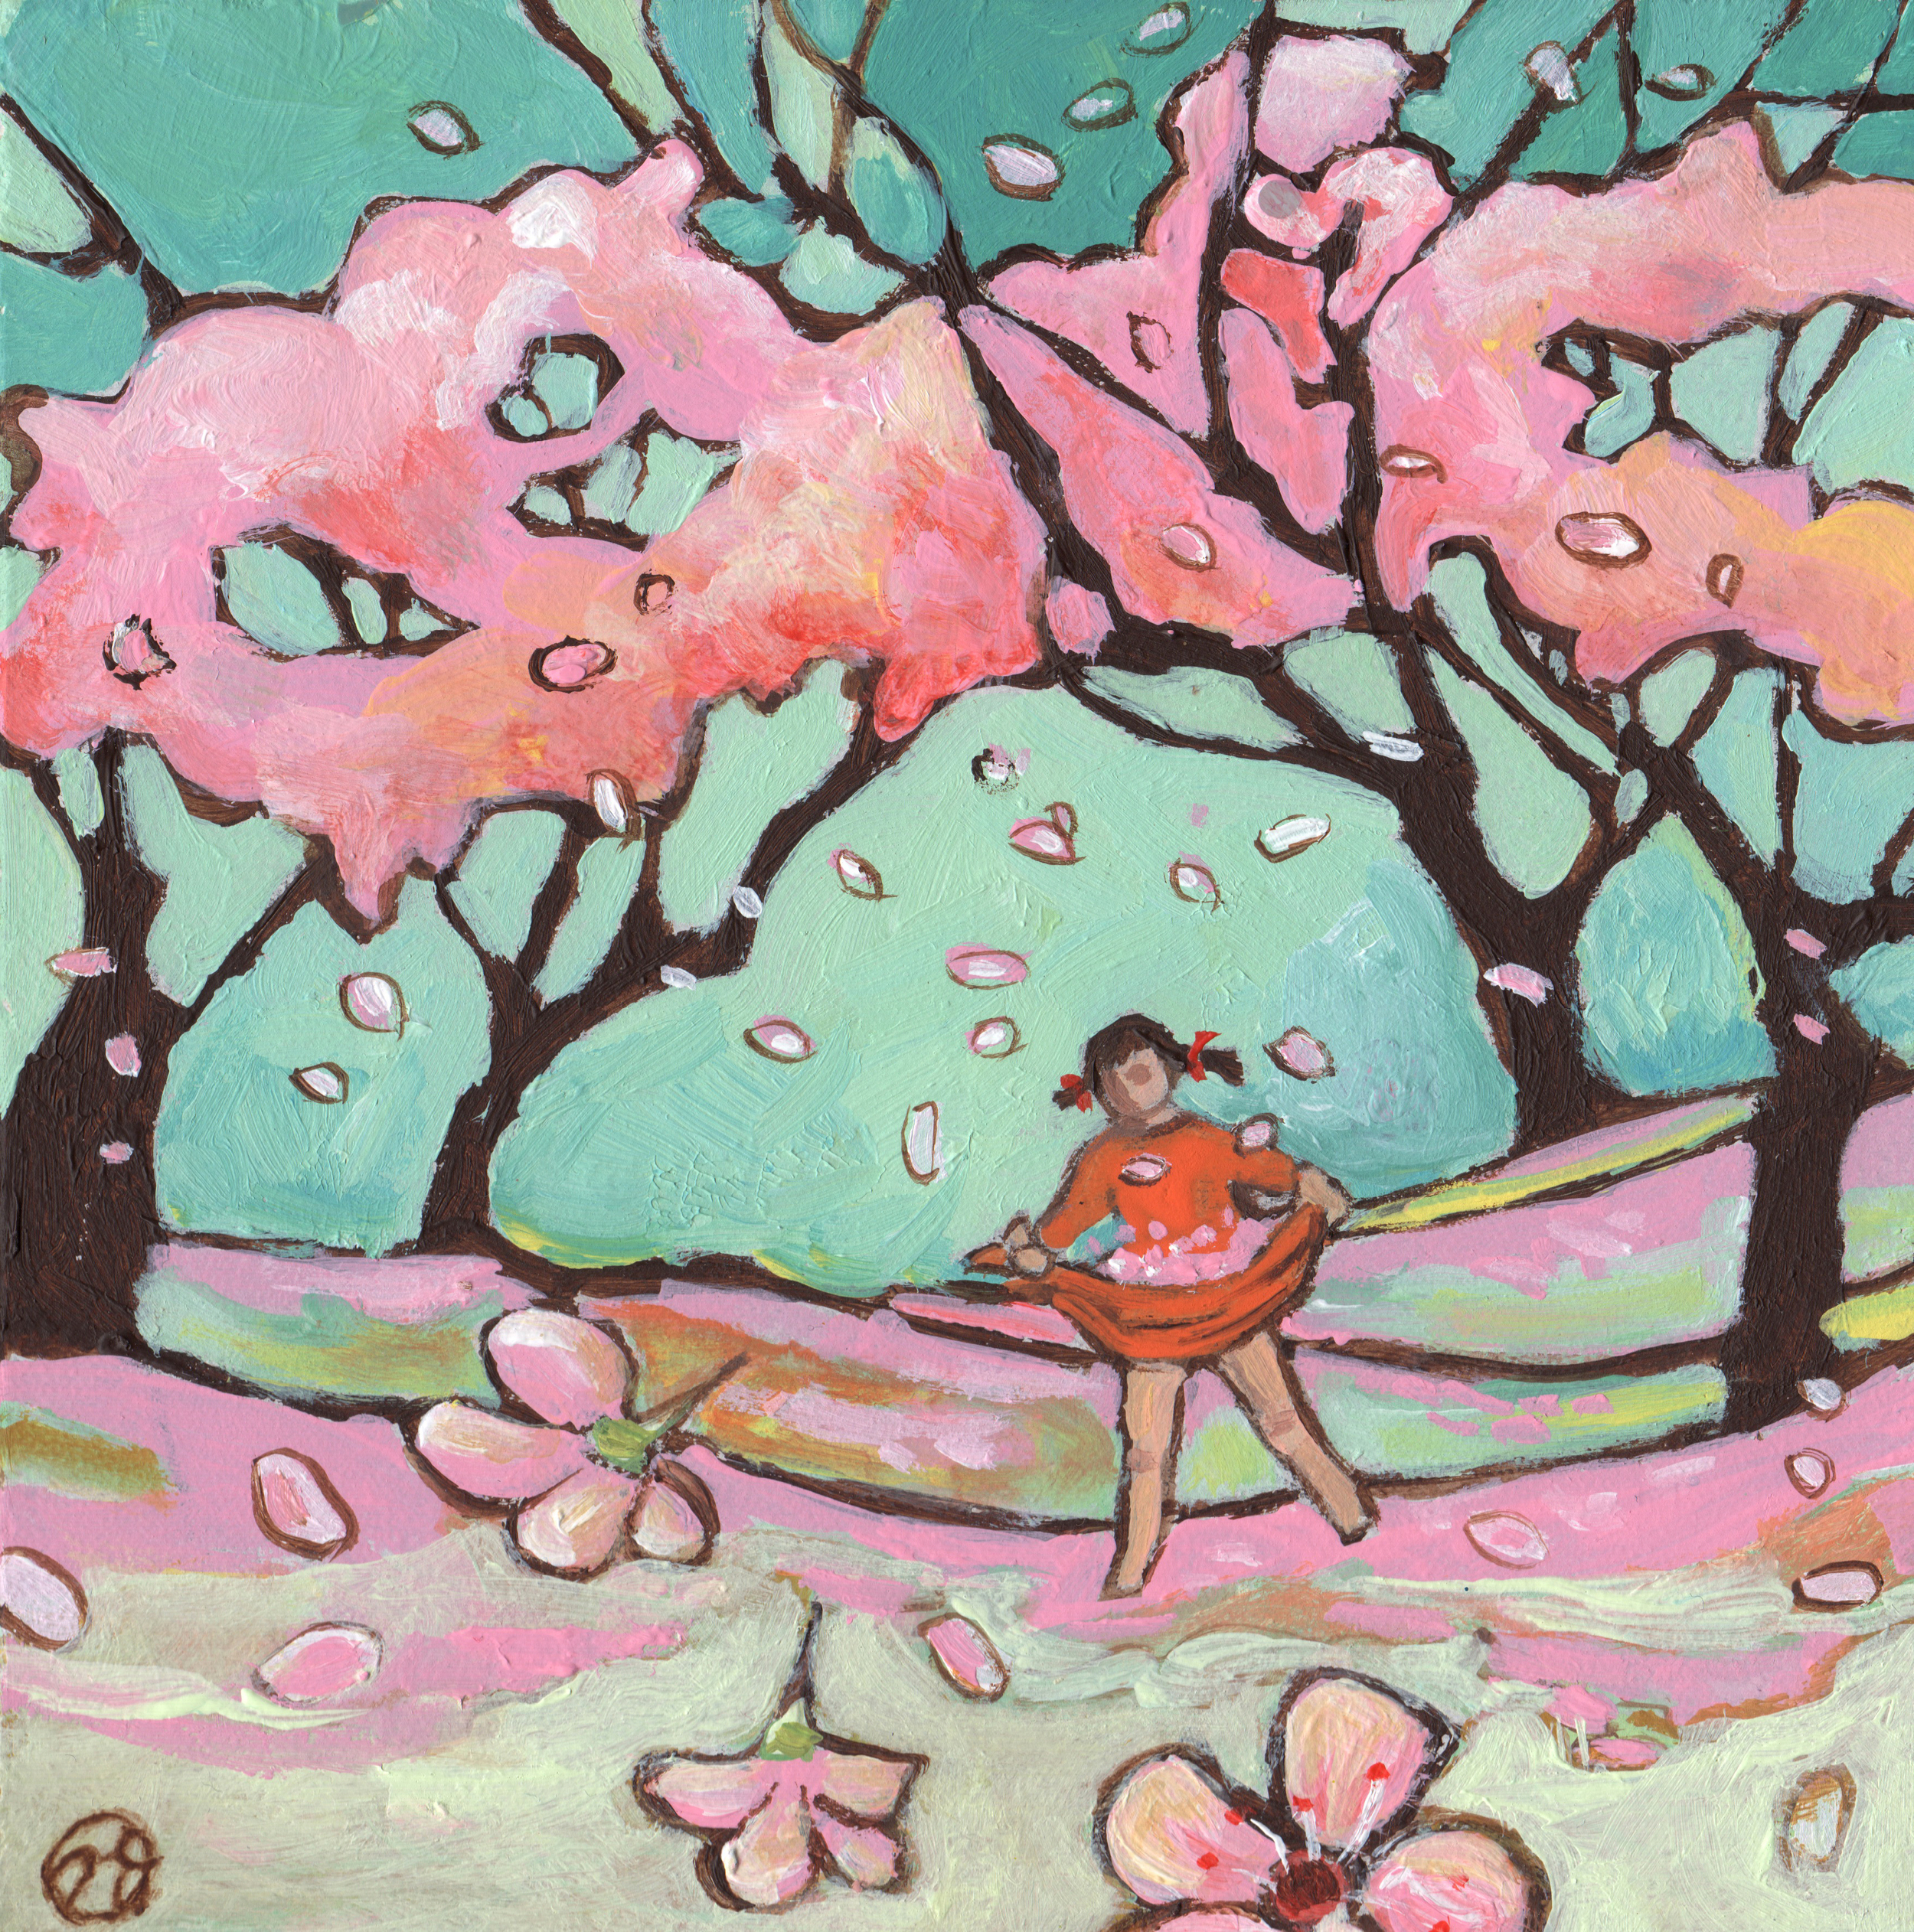 Catching Cherry Blossoms